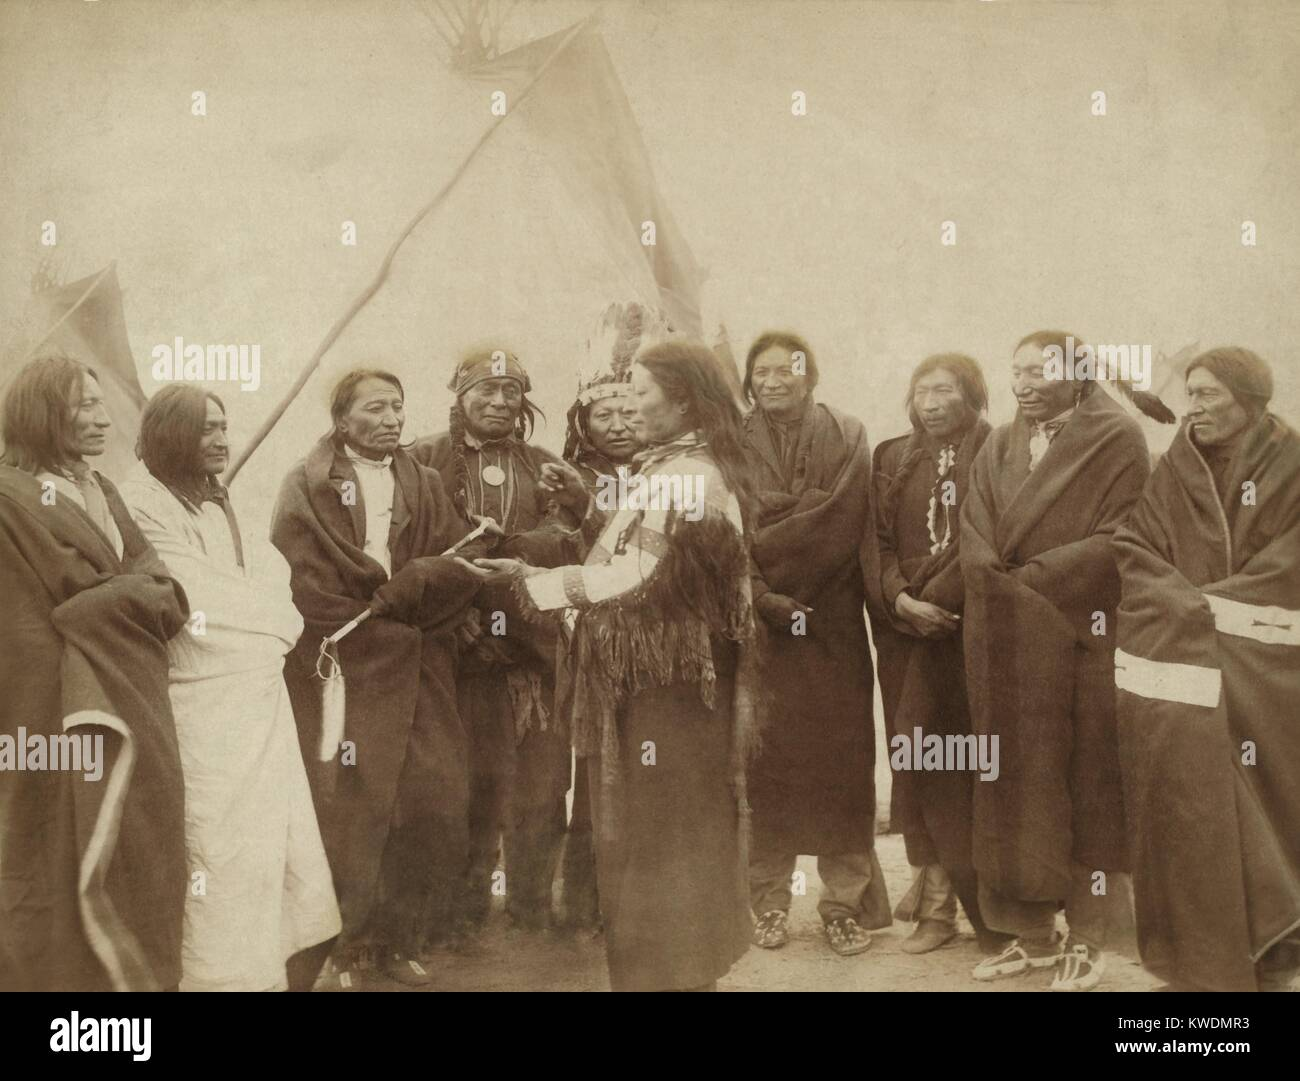 Lakota chiefs who counciled with Gen. Miles for peace after the 1890 Wounded Knee Massacre. 1. Standing Bull, 2. Stock Photo